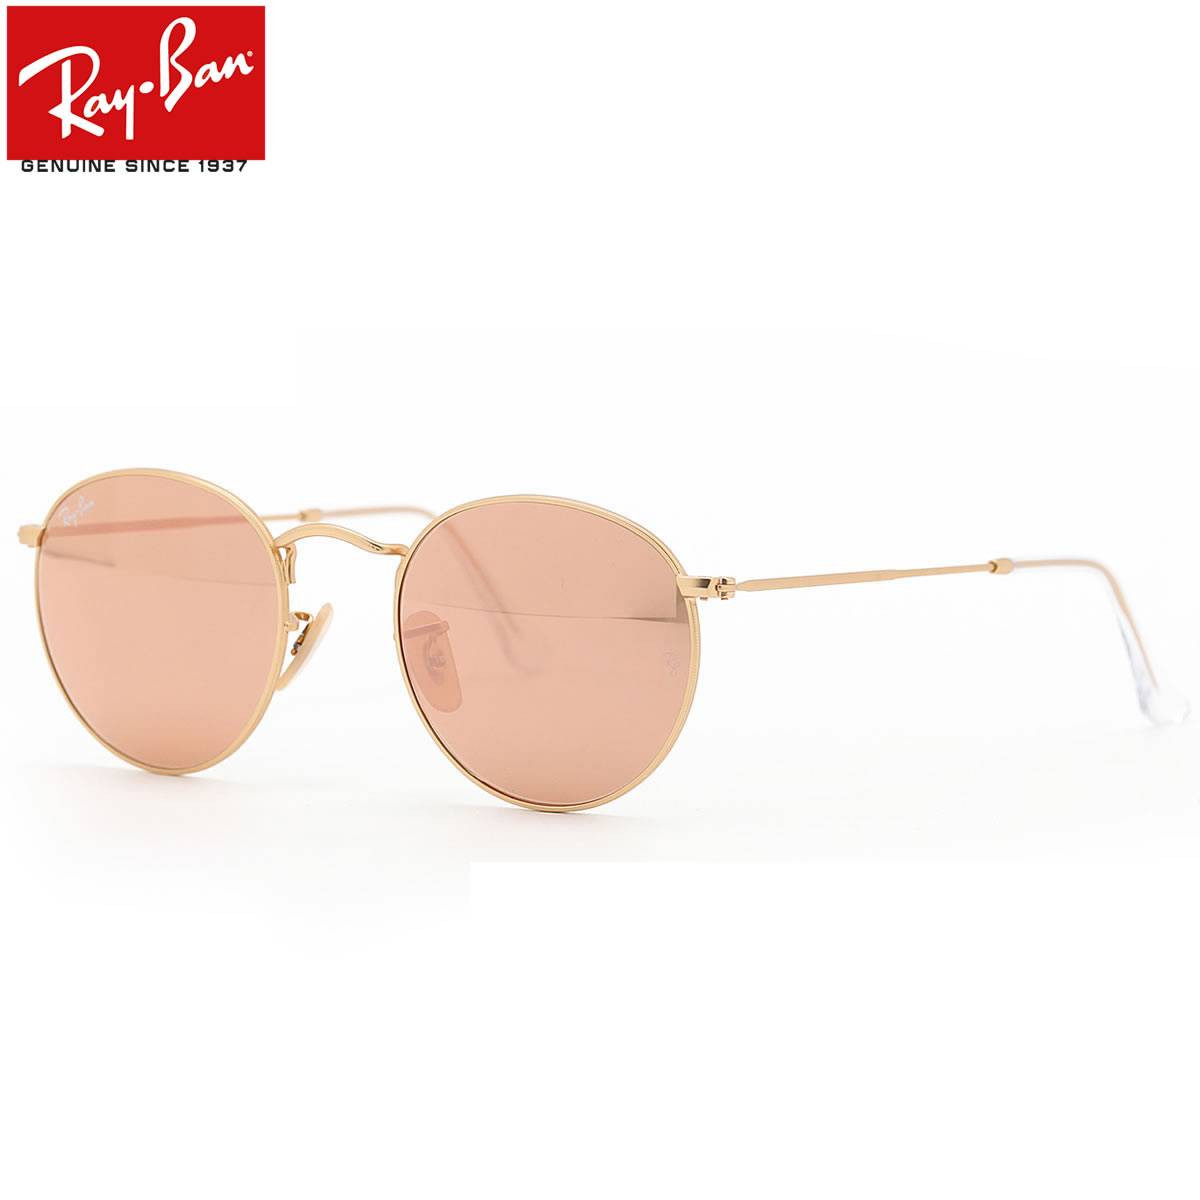 Ray-Ban Sunglasses RB3447 112 Z2 50size ROUND METAL GENUINE NEW rayban ray  ban 685d31f42d82